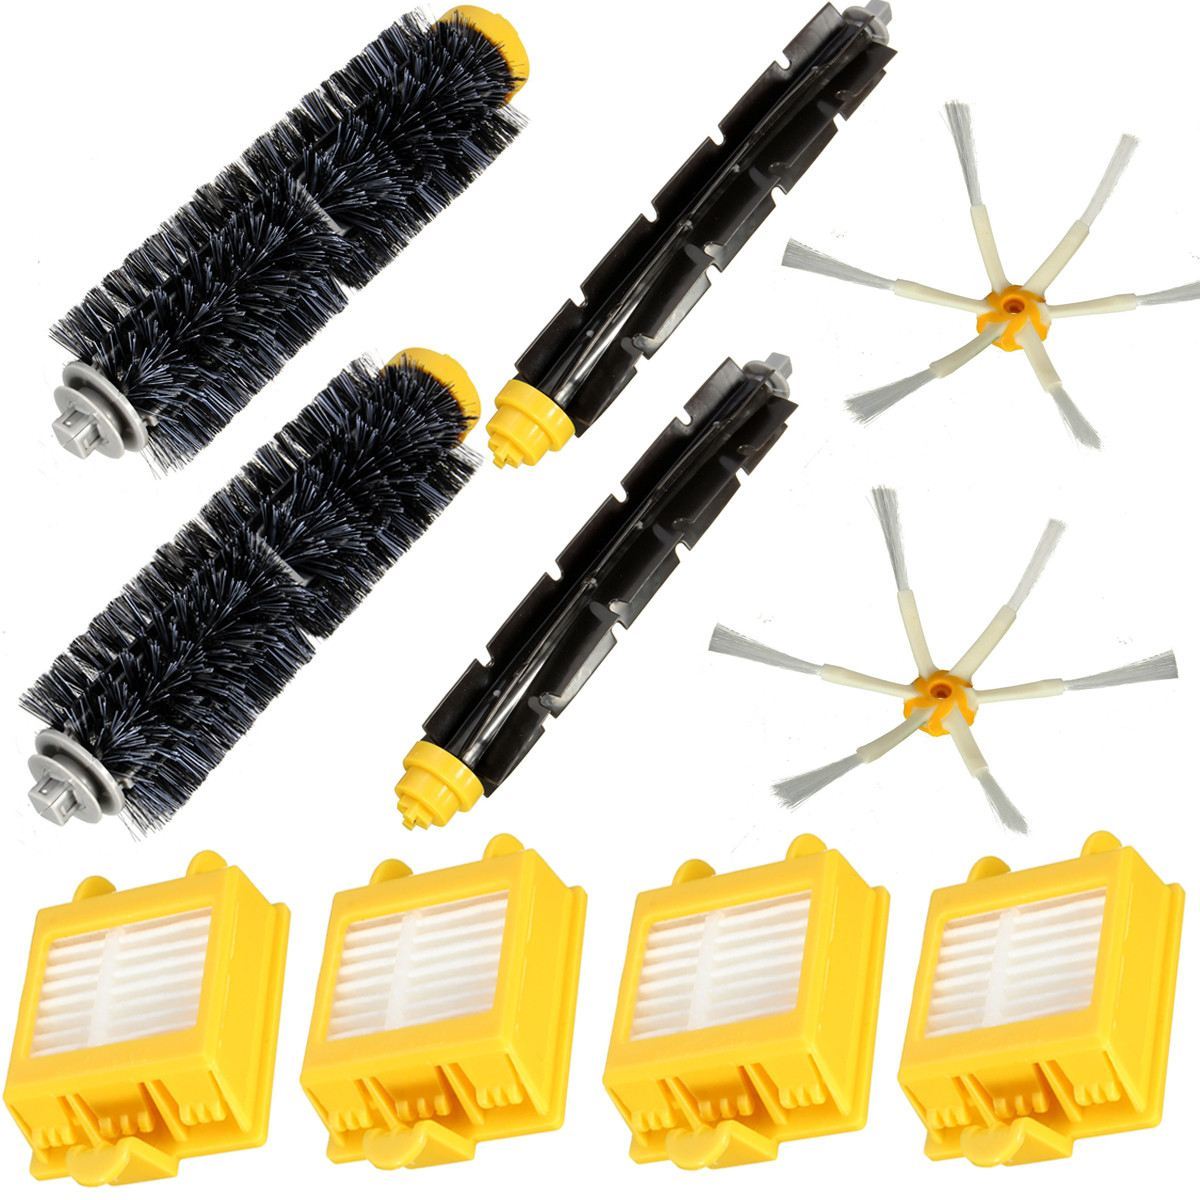 2018 4Pcs Hepa Filters And Flexible Beater Bristle Brush Kit 2 Side Brush For iRobot Roomba 700 Series 6 Armed 760 770 780 hepa filters bristle brush flexible beater brush 3 armed side brush pack set for irobot roomba 700 series 760 770 780 790